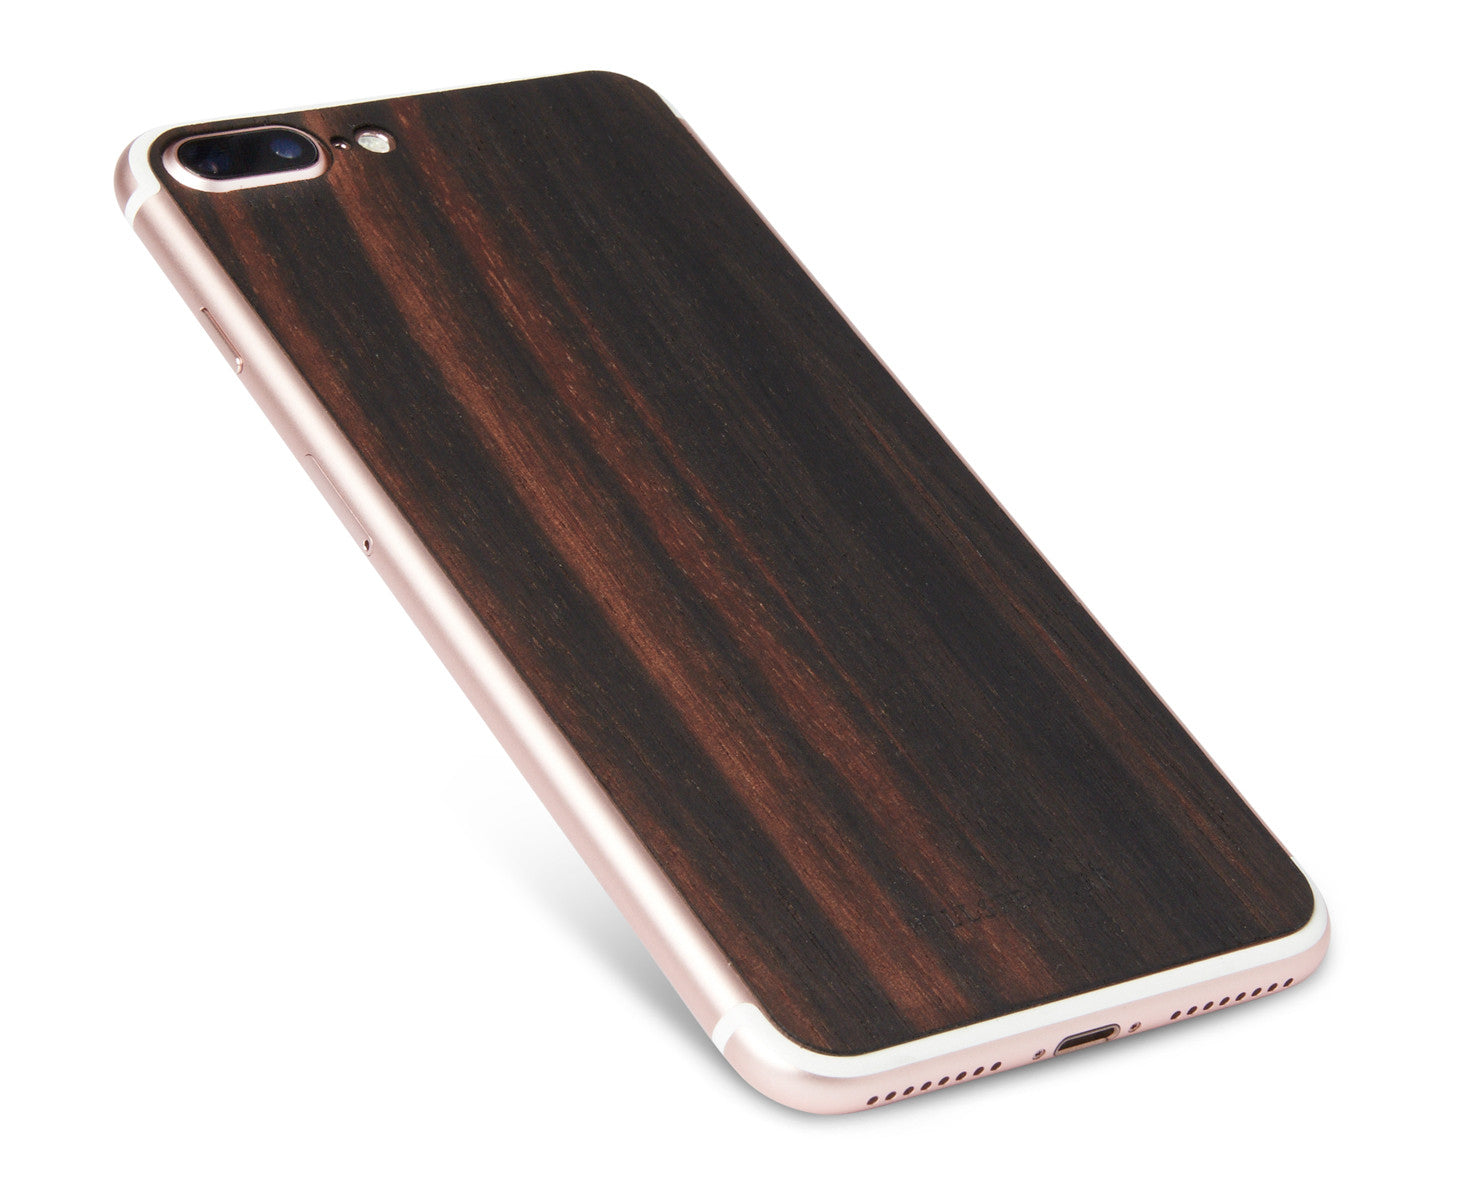 IPHONE 7 PLUS VEIL | KILLSPENCER® - Macassar Ebony